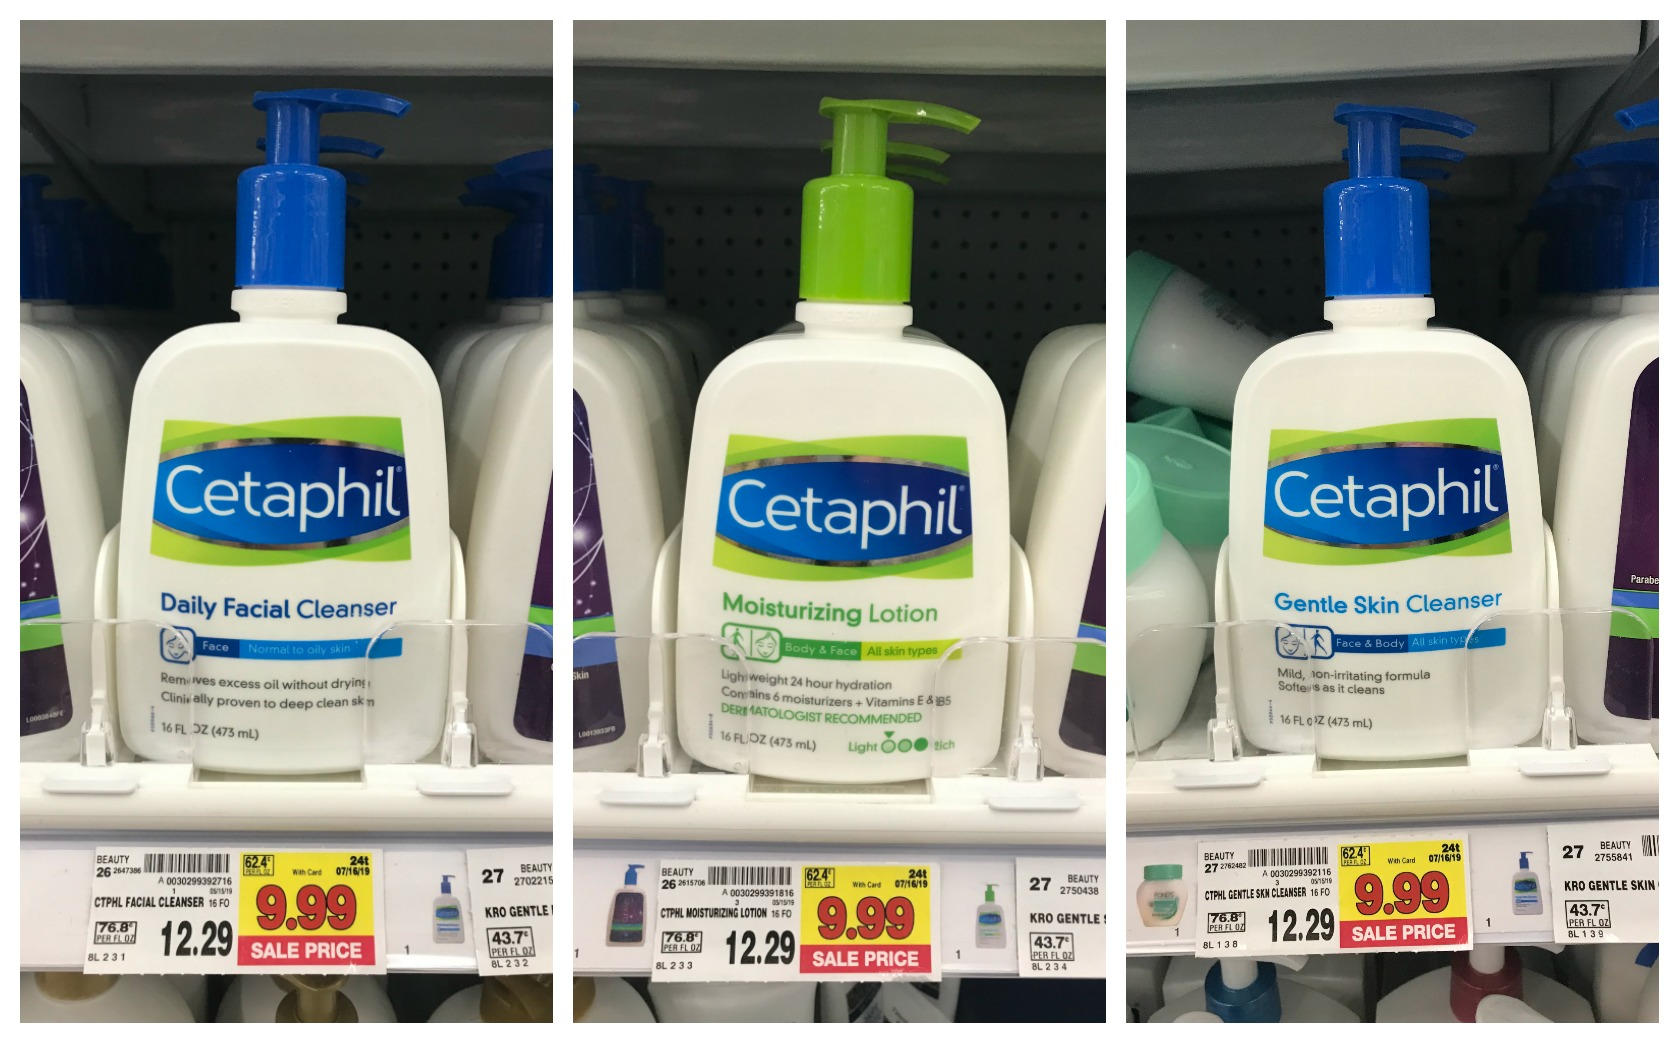 graphic regarding Cetaphil Coupons Printable identify Refreshing Cetaphil Coupon Lotions and Cleansers Just $6.99 at